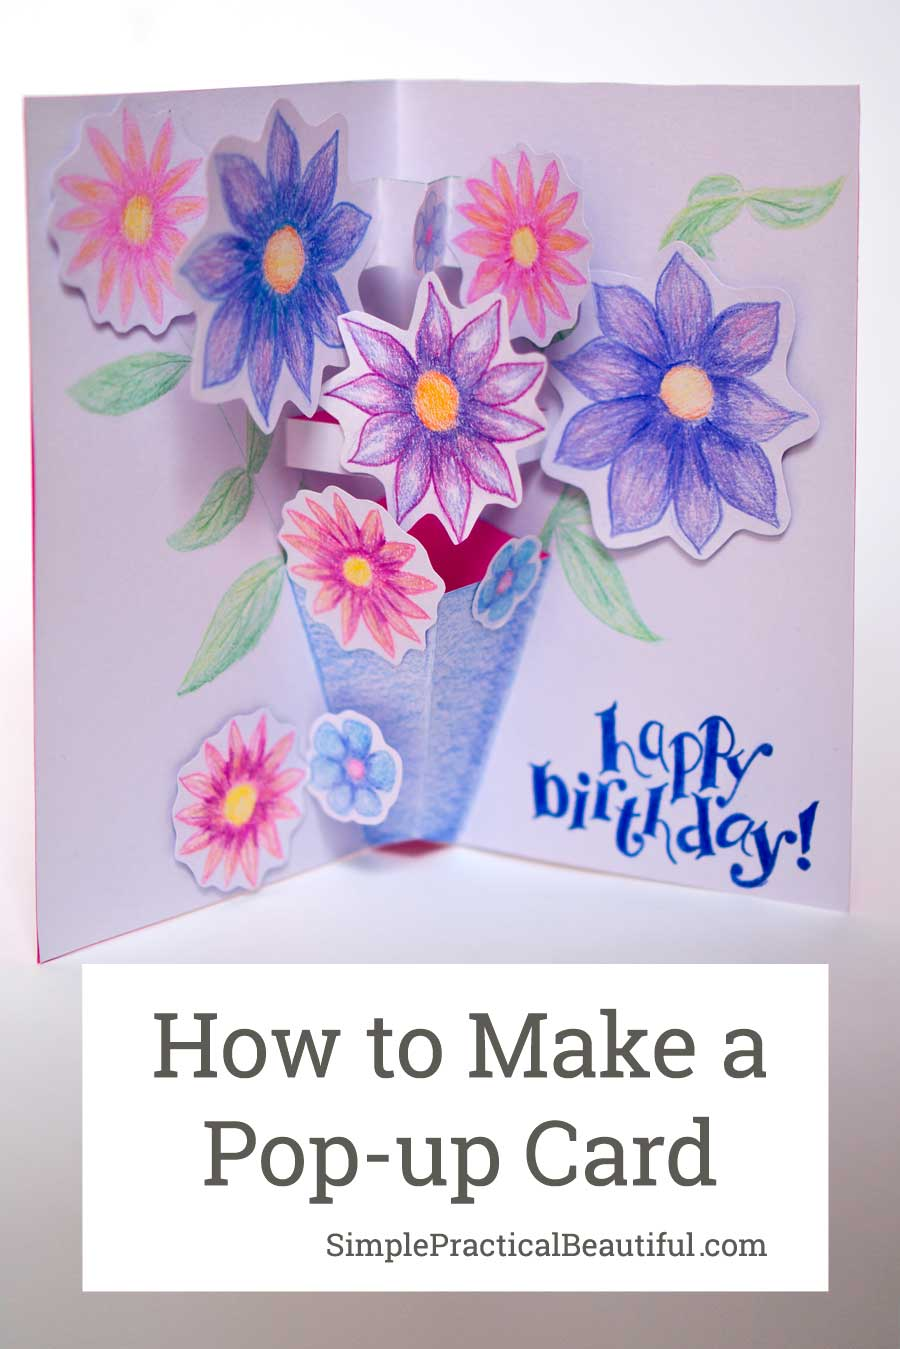 How to make a pop up card inspired by paddington 2 for Pop up birthday cards for mom